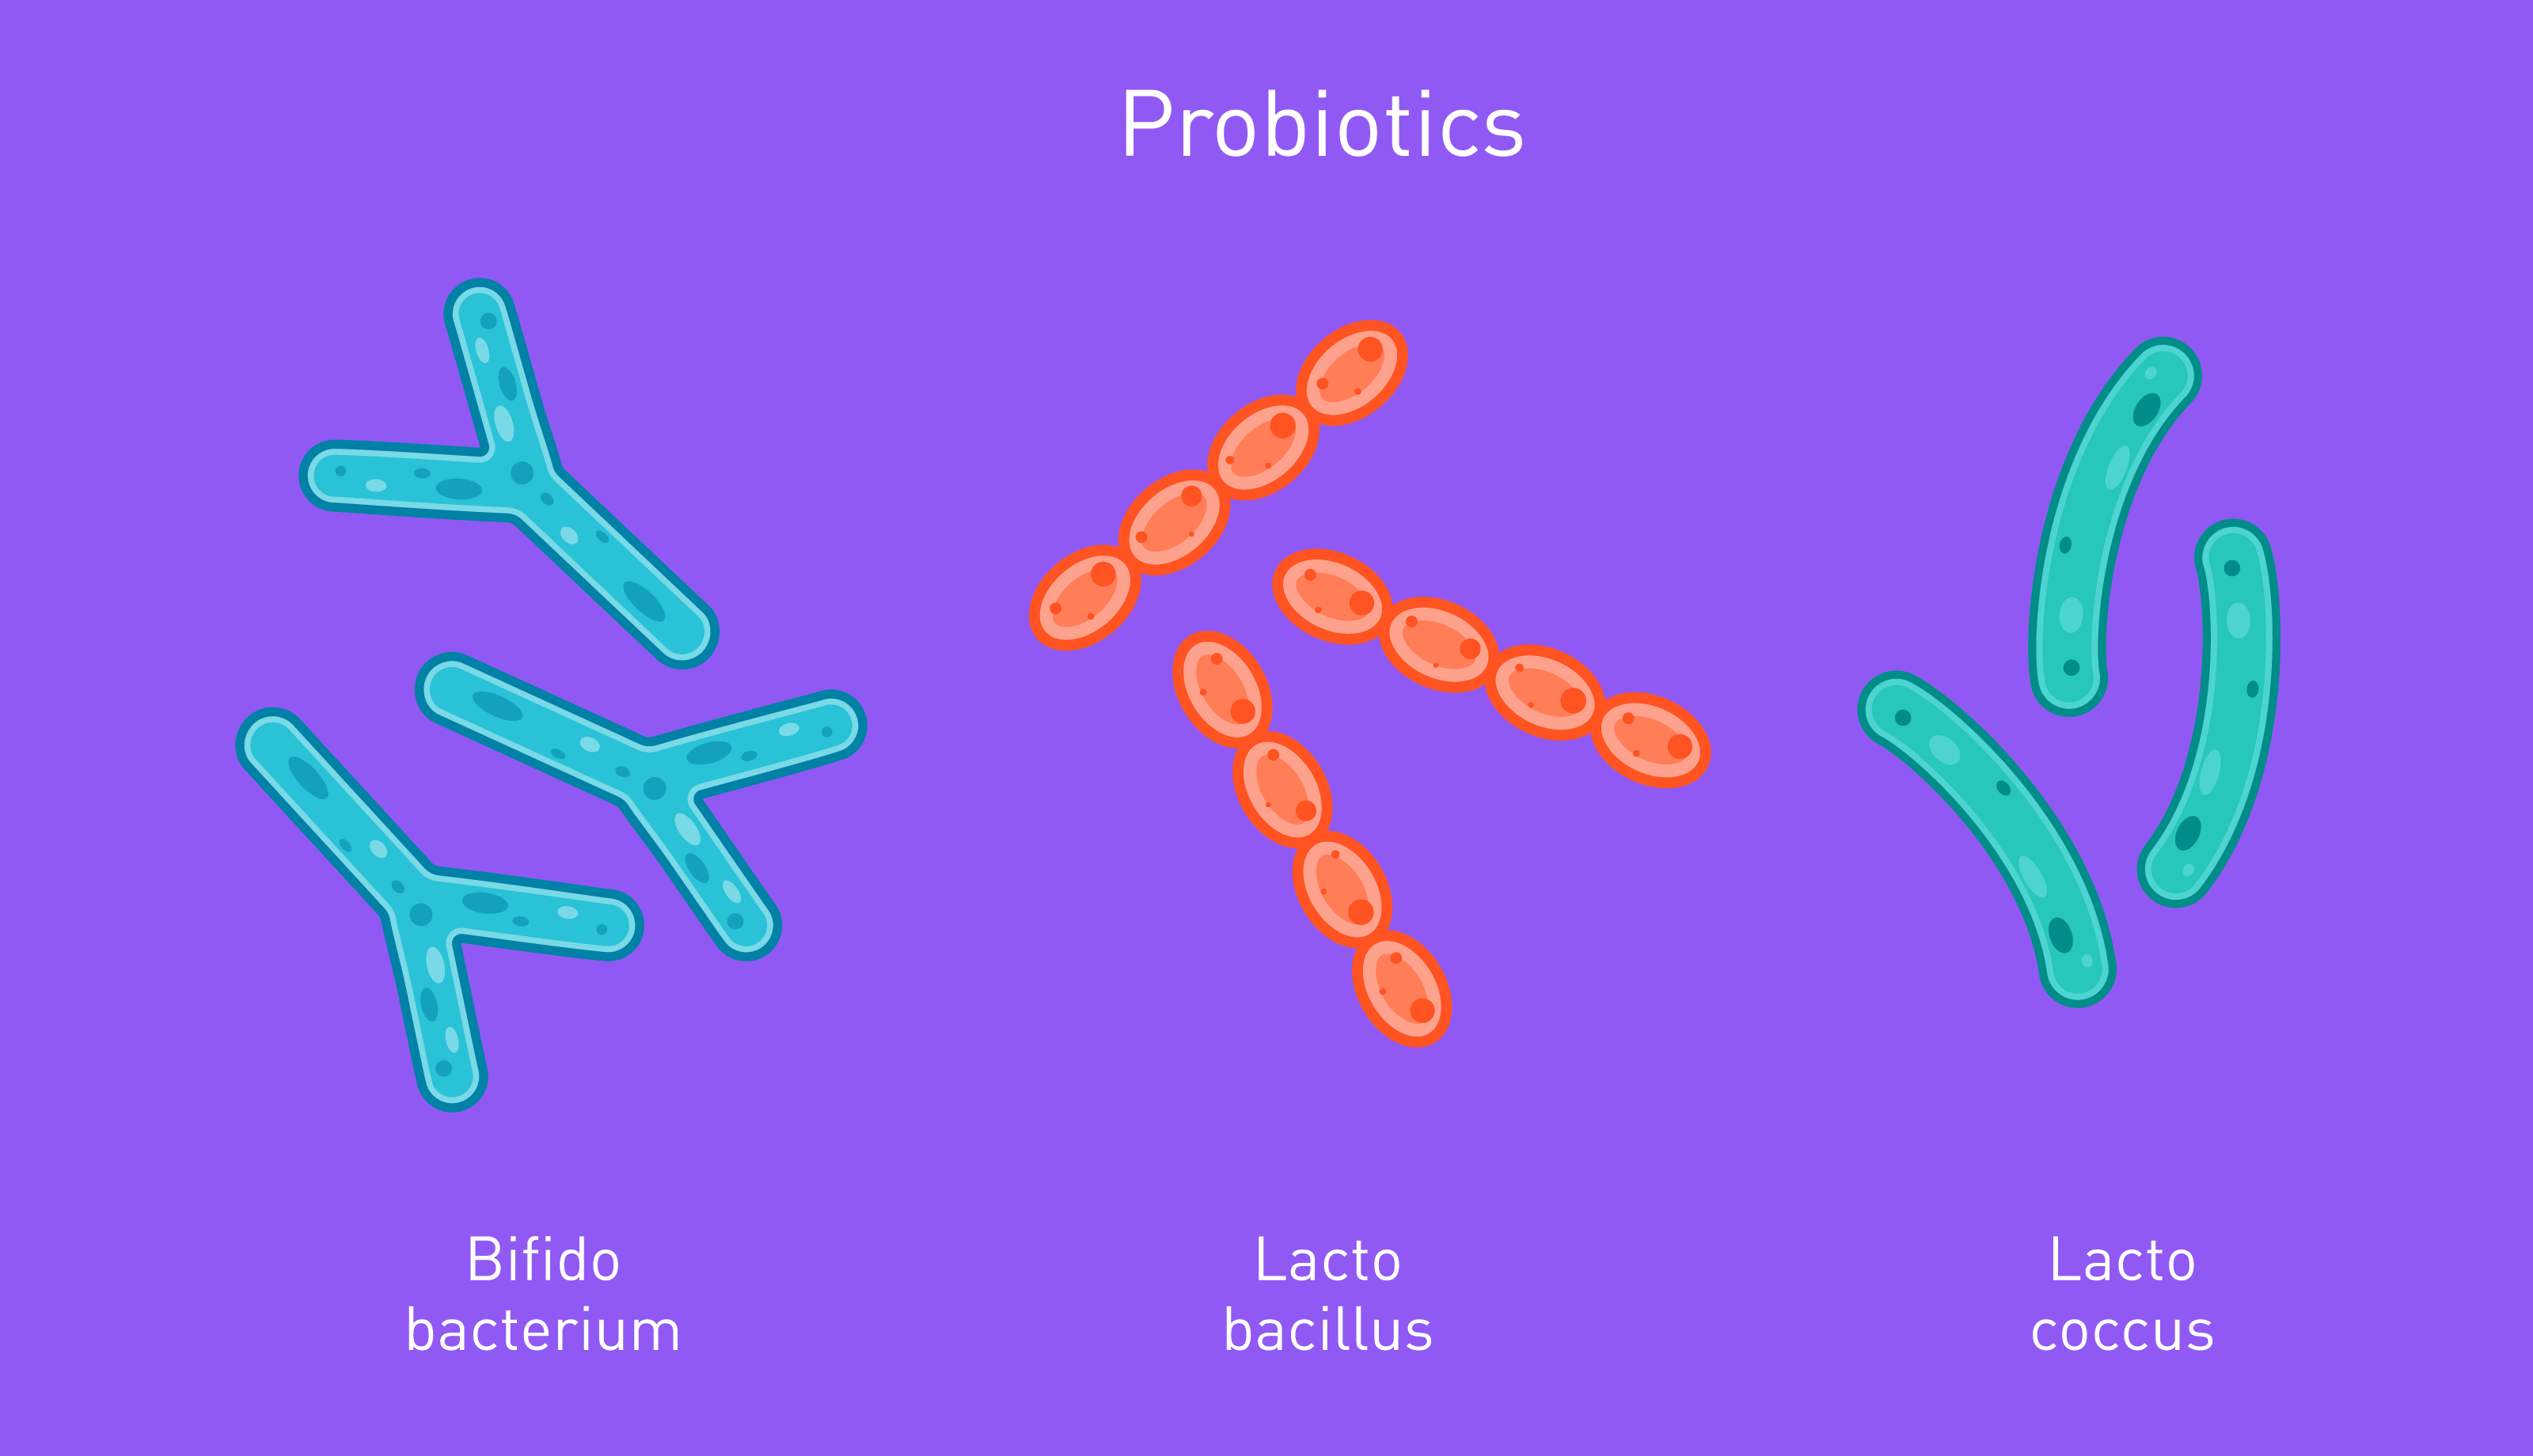 The role of intestinal bacteria is fuelled by prebiotic dietary fibers